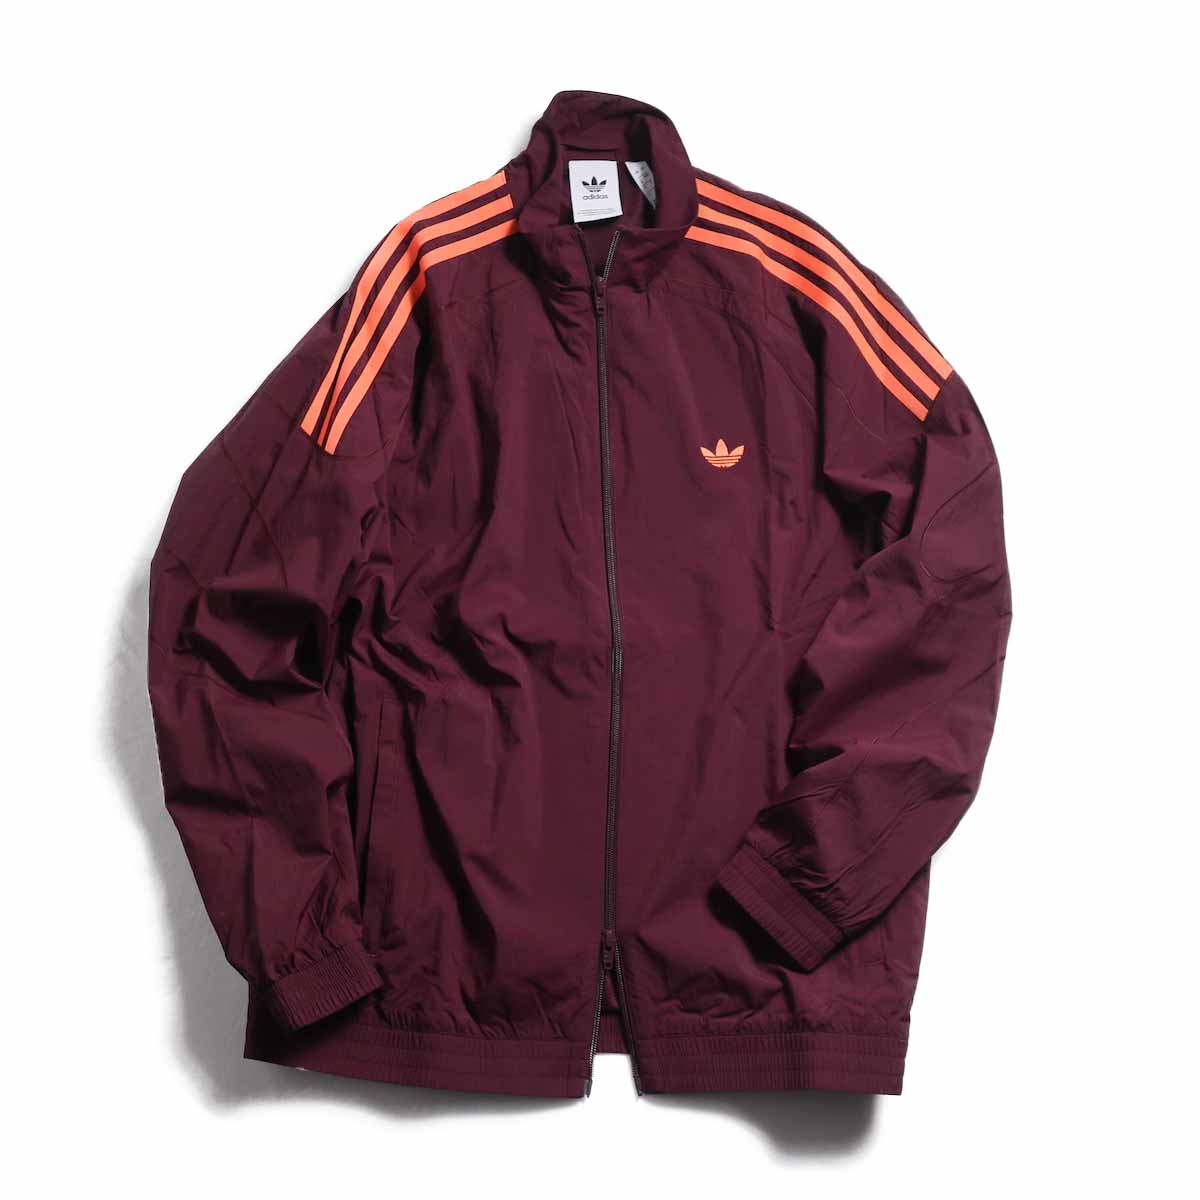 adidas originals / Flamestrike Woven Track Top -Maroon 正面